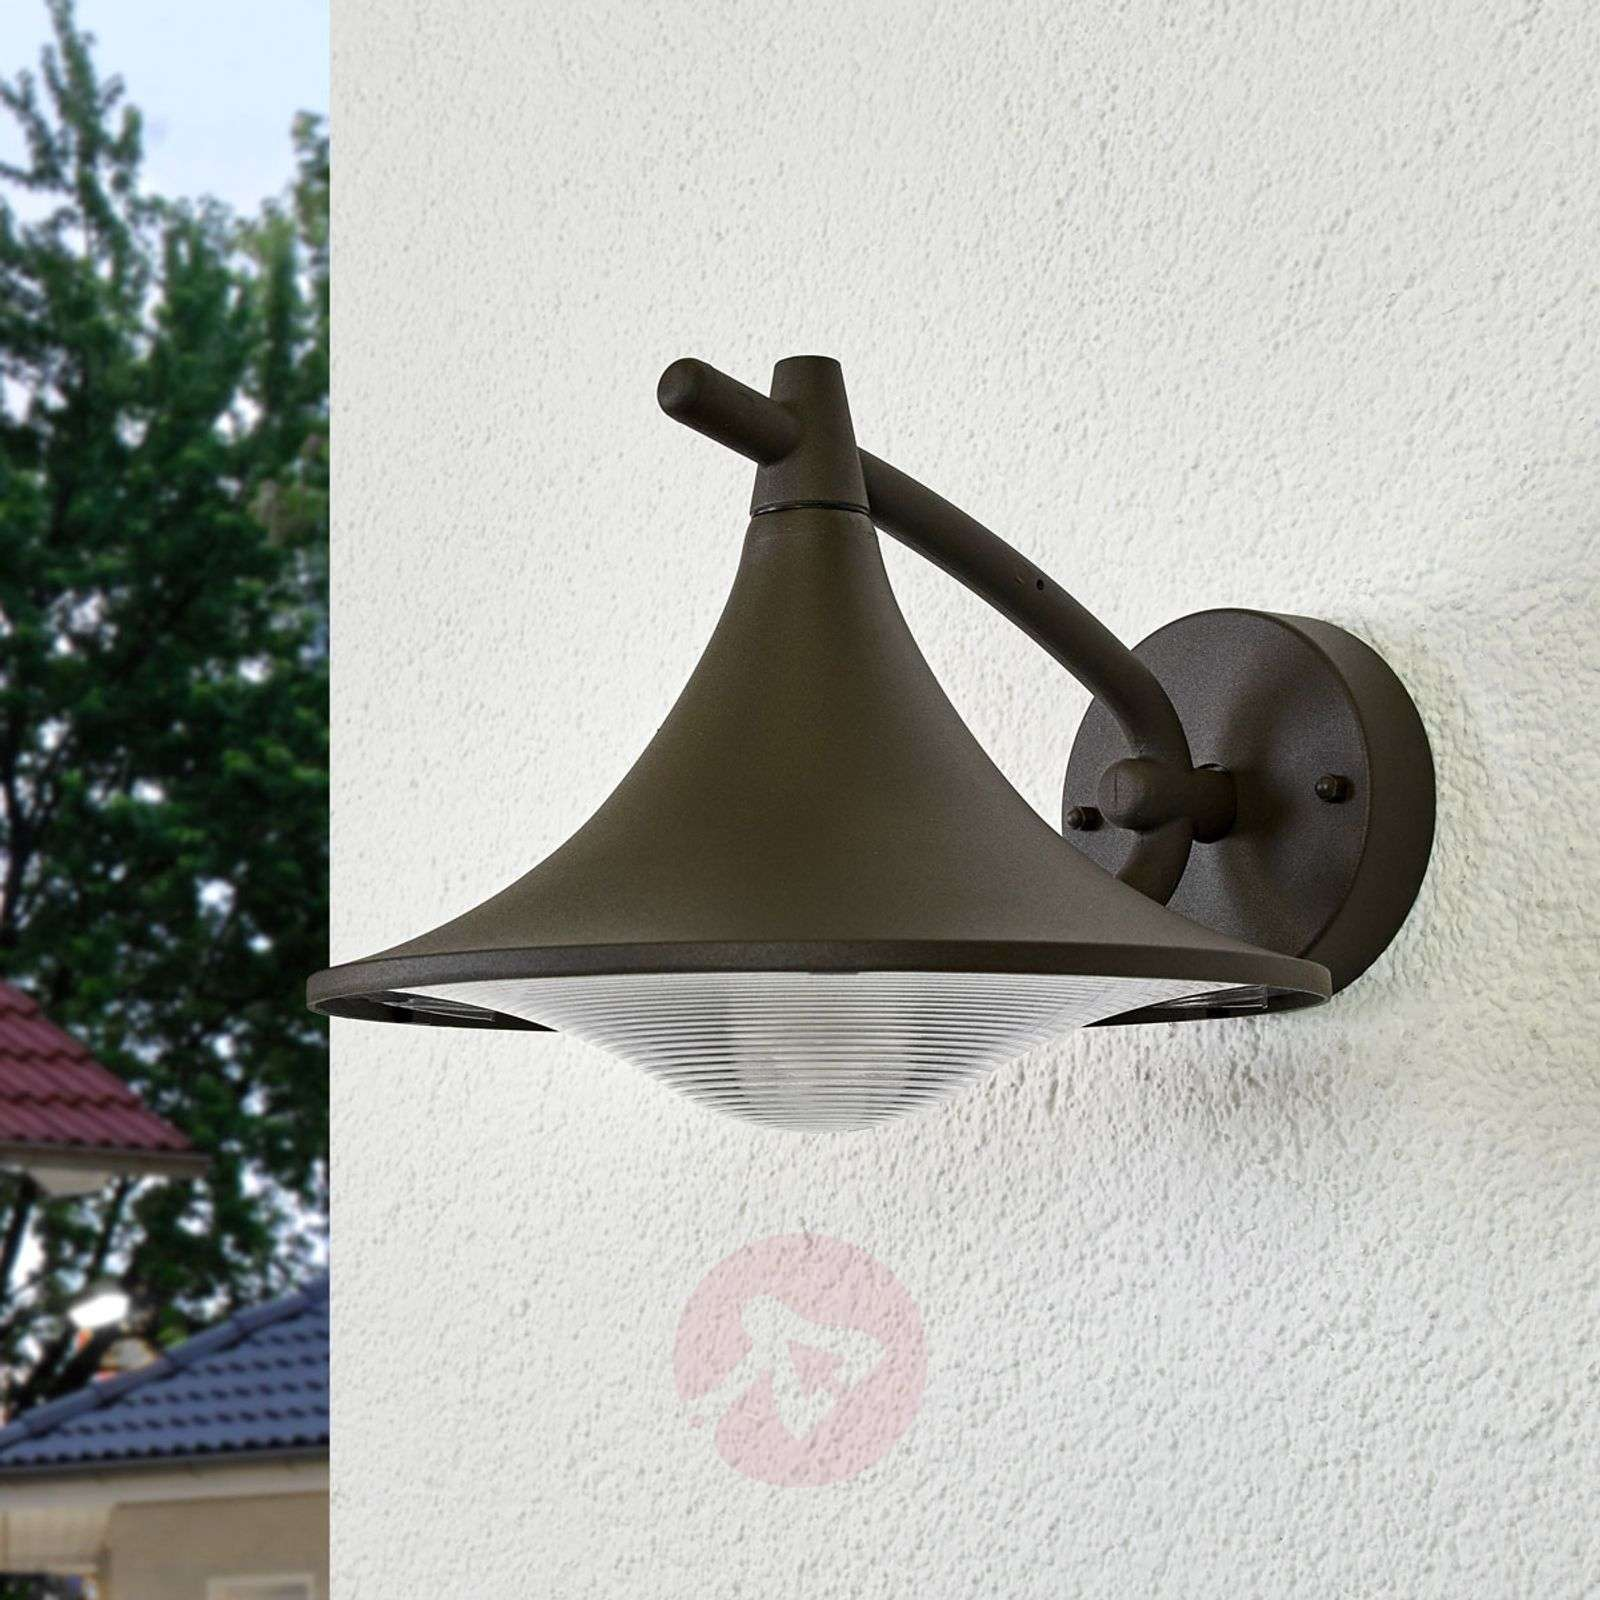 Anthracite-coloured Cedar outdoor wall light-7531783-01